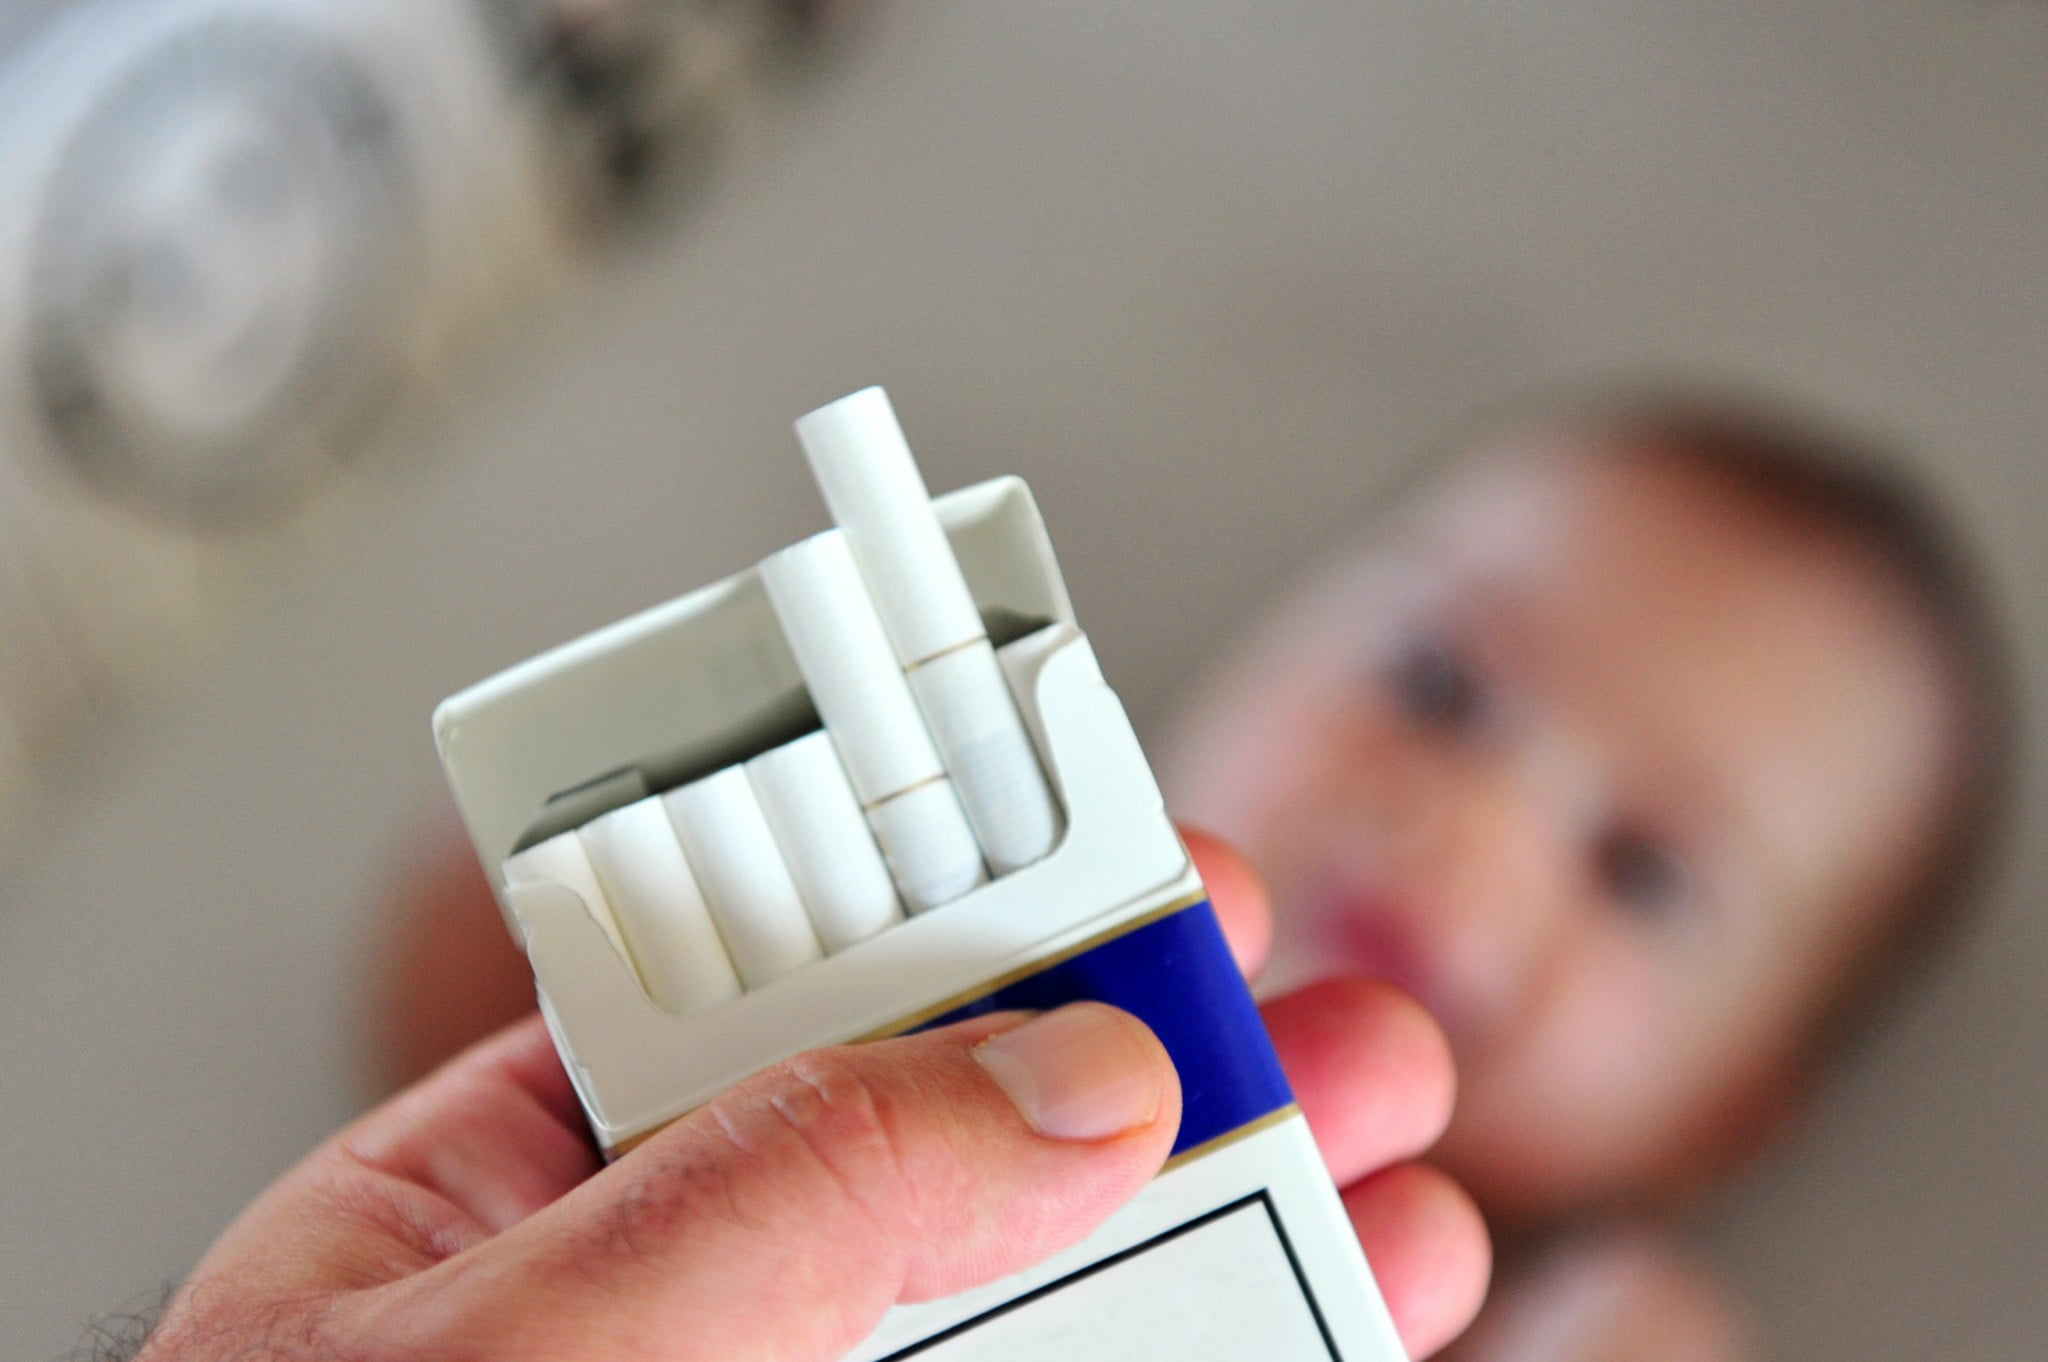 plain packaging, cigarette packet in front of baby